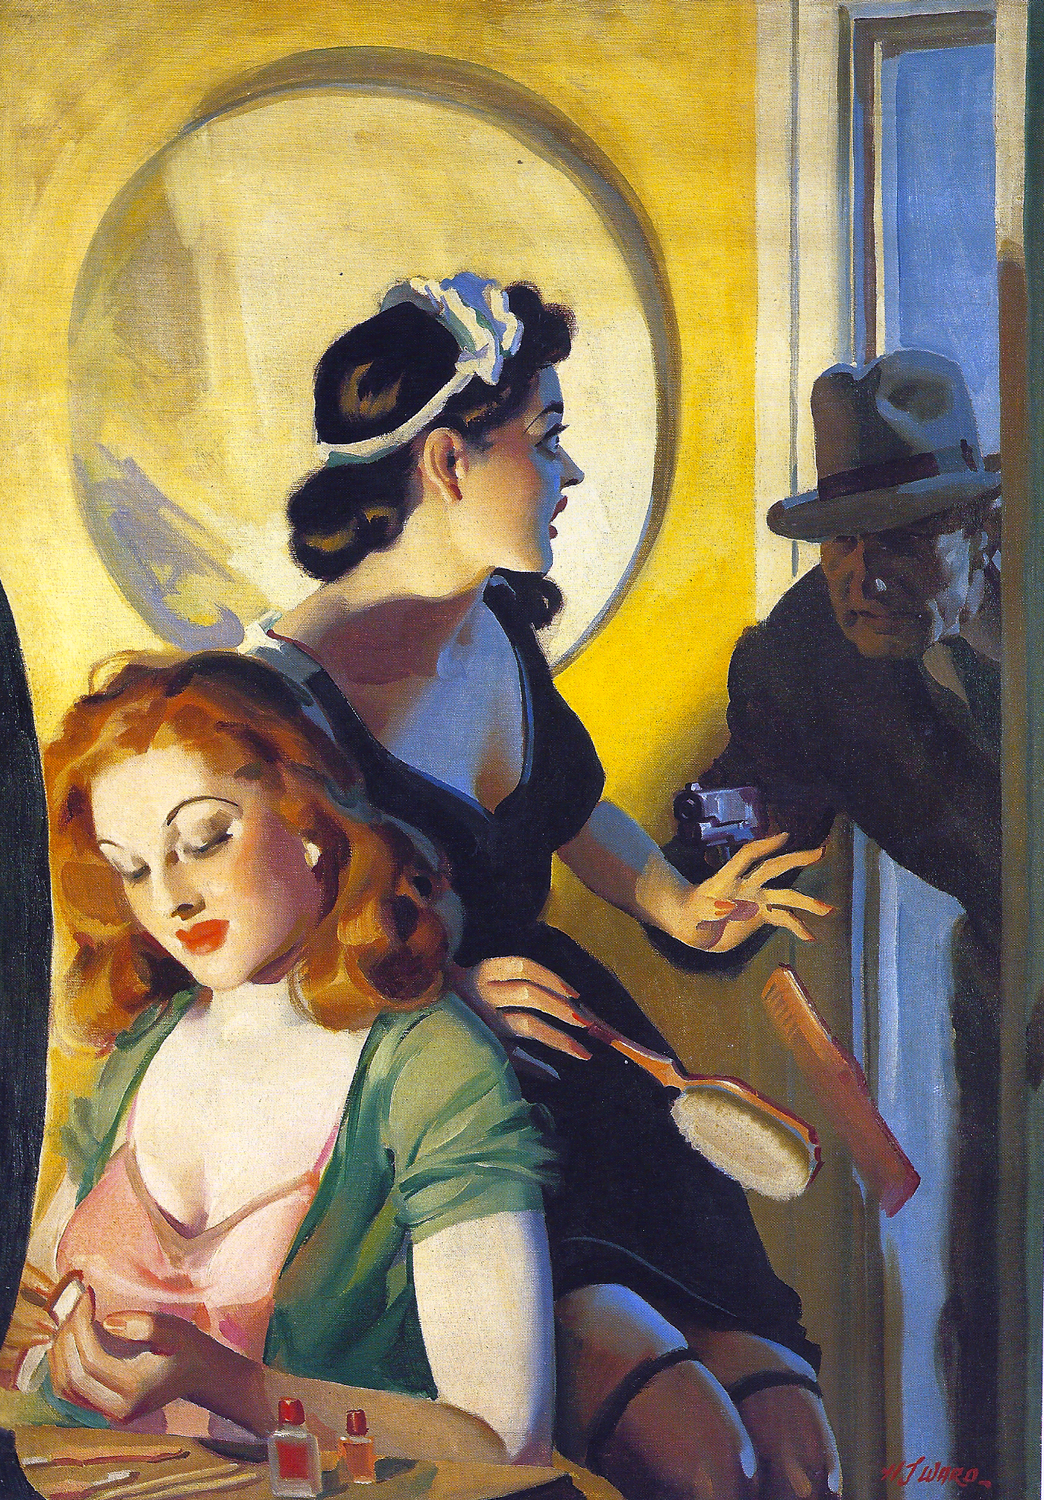 H J Ward Original cover painting for Private Detective Stories July 1938 Oil on canvas Via